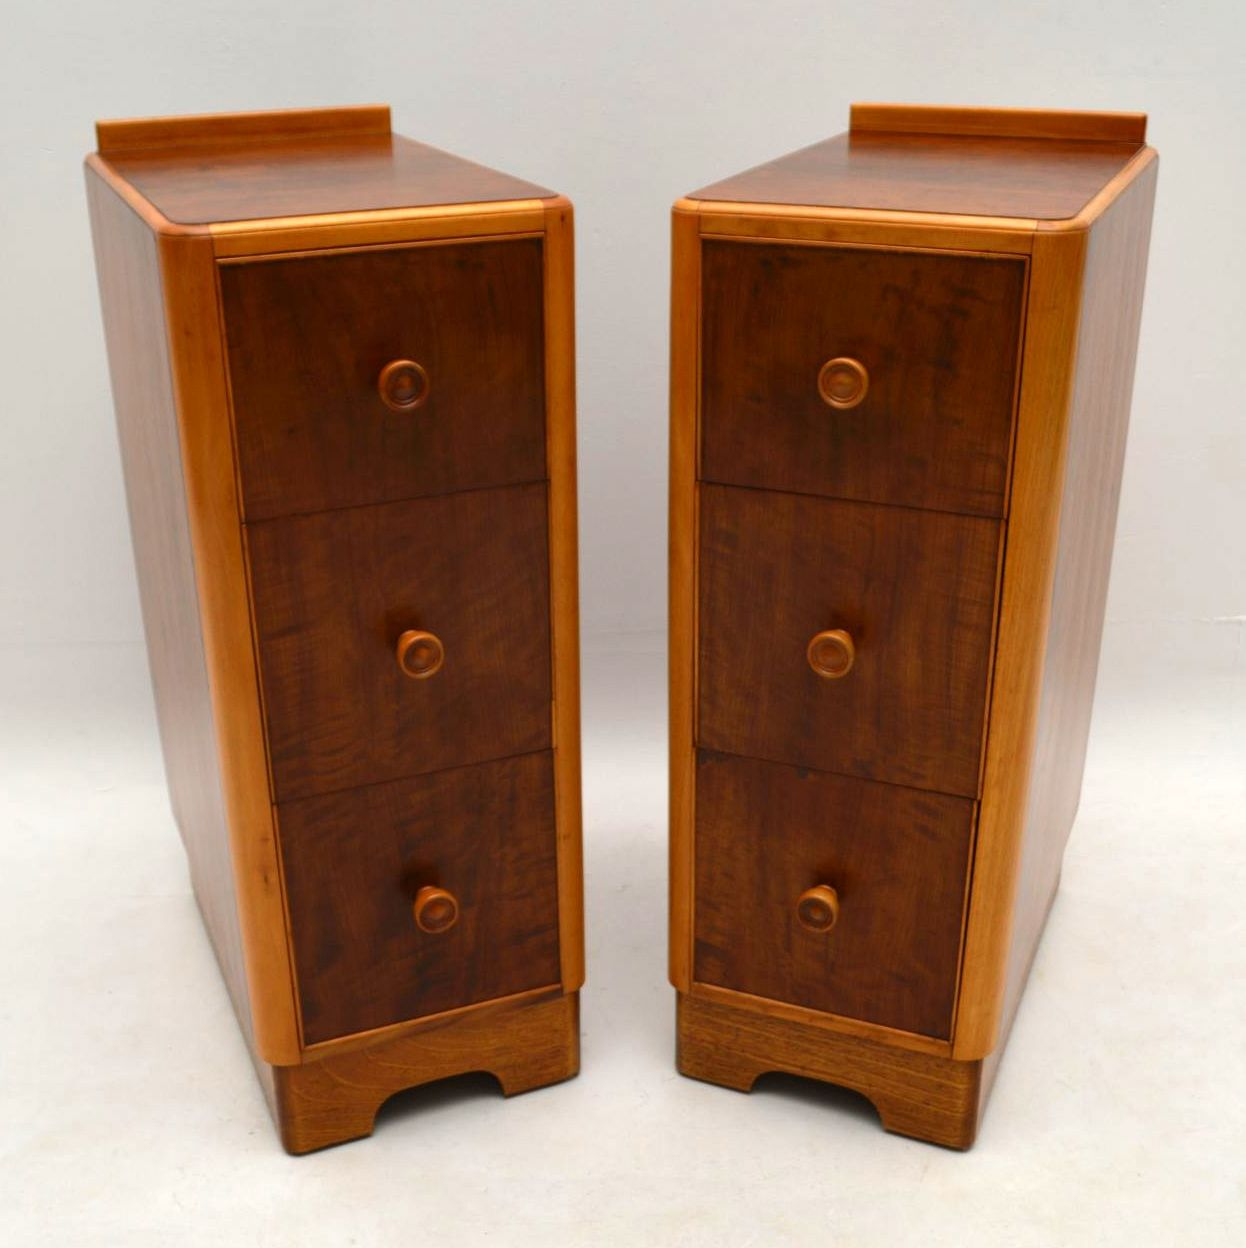 1960's Pair of Vintage Walnut Bedside Chests